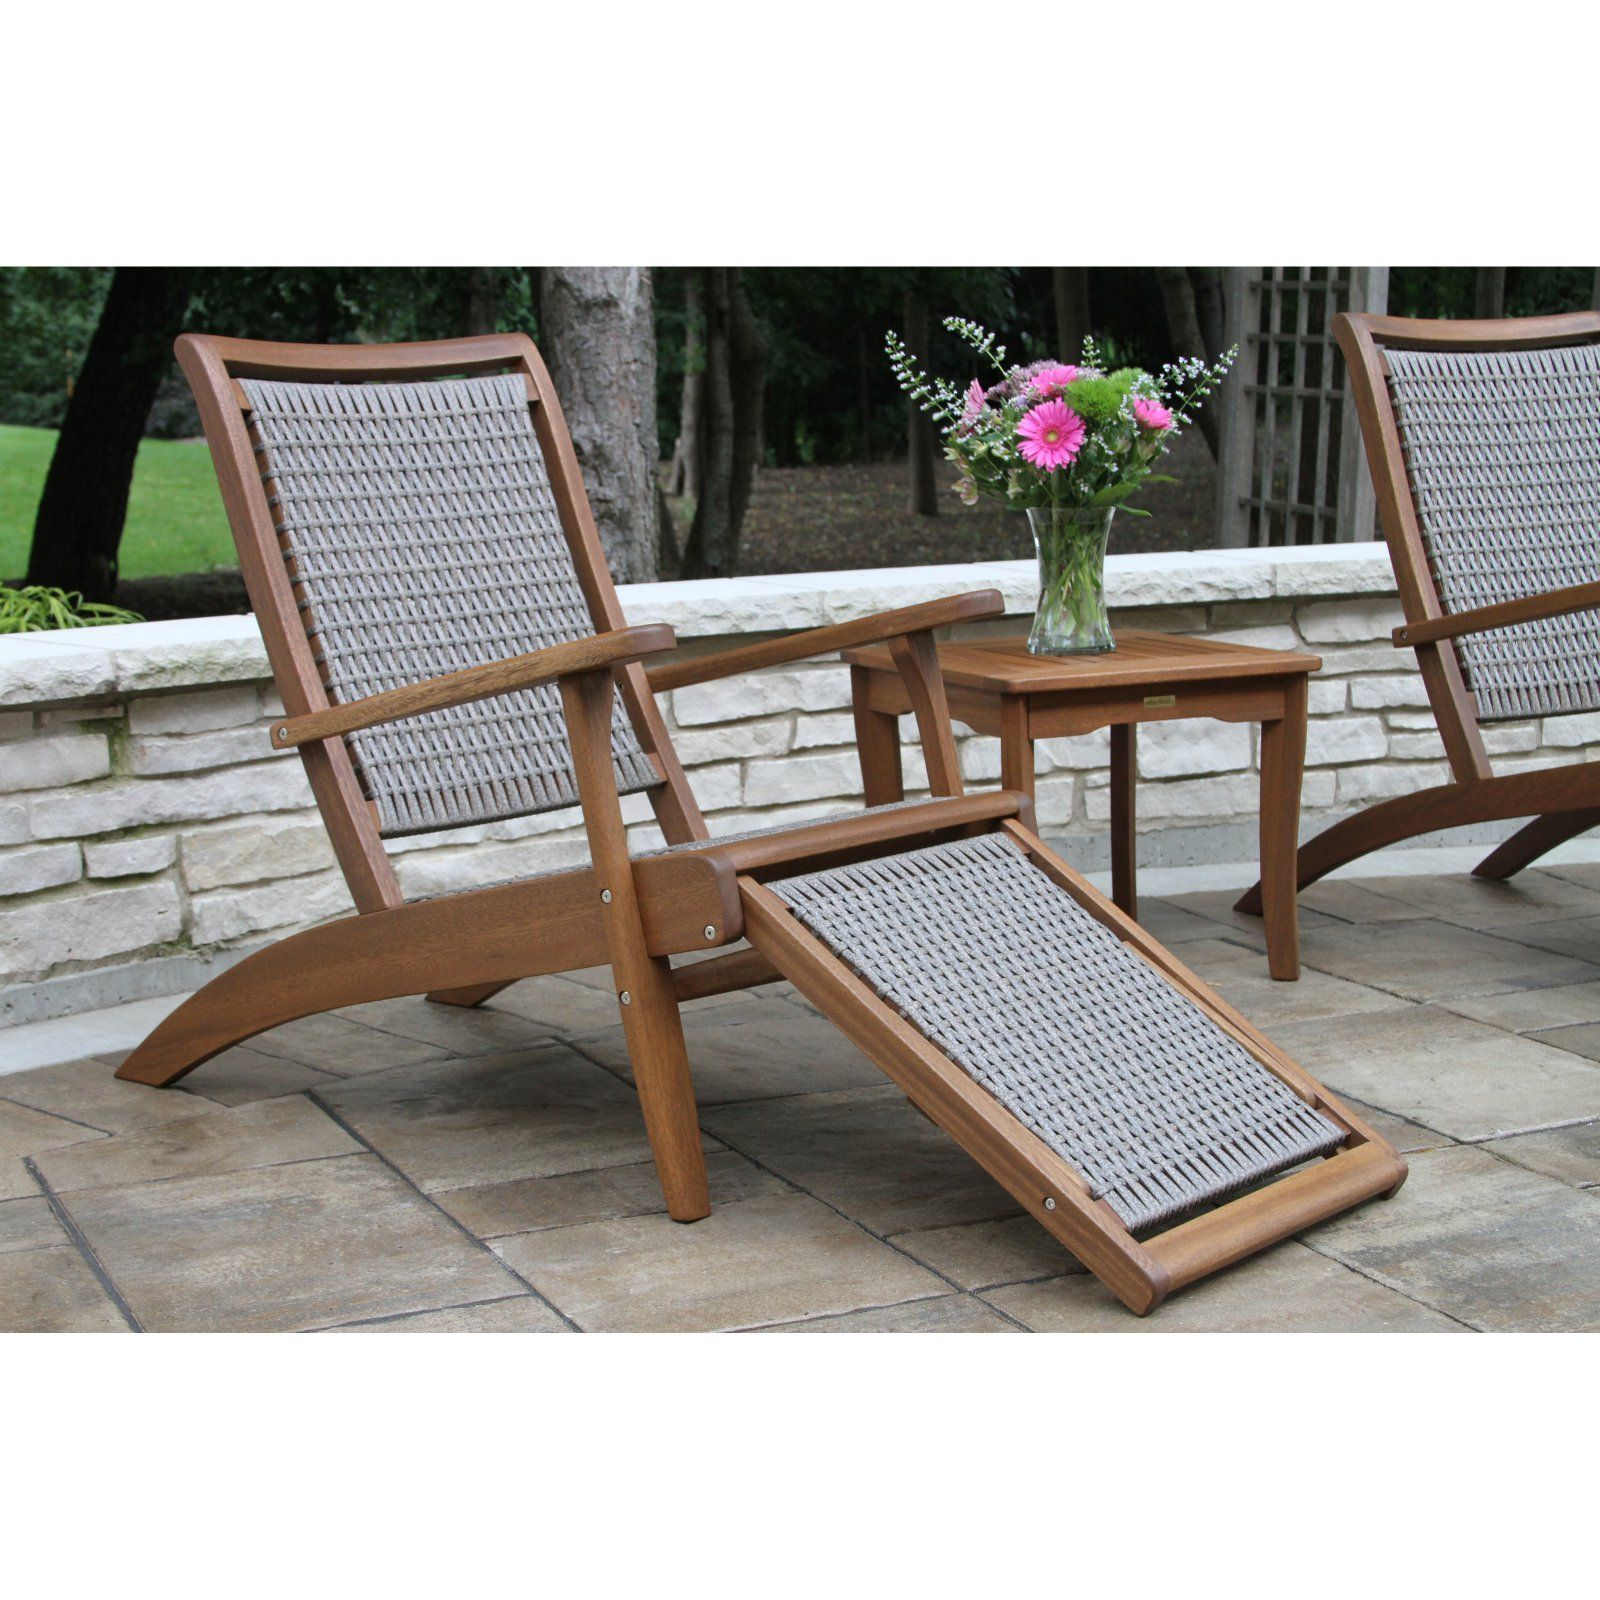 Vineyard Outdoor Lounge Chair with BuiltIn Ottoman